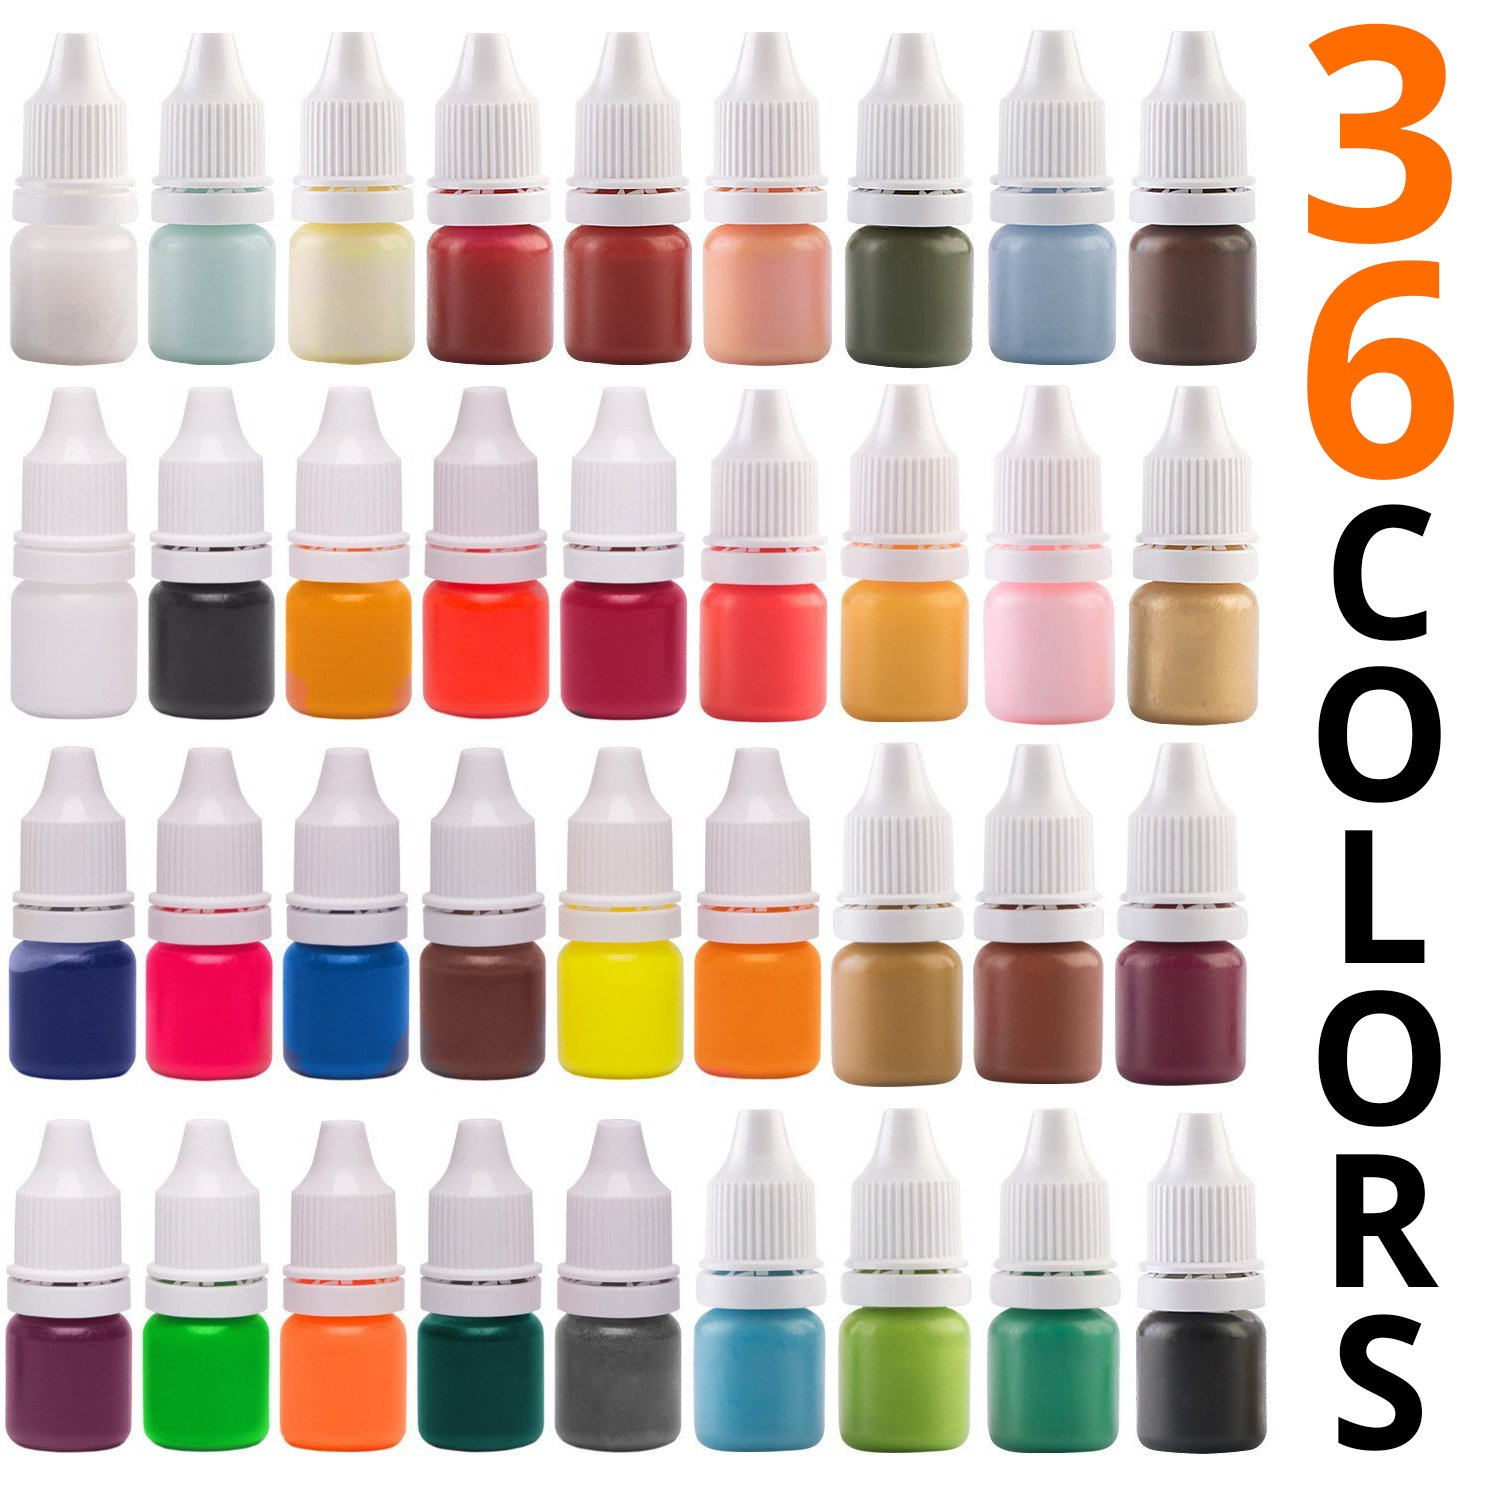 Soap Dye for Soap Making supplies - 36 Colors - Bath Bomb Liquid Dye - Non-toxic - Animal friendly - Irritant free - Stain free and gentle and safe to your skin … Soap Shop 4336901212